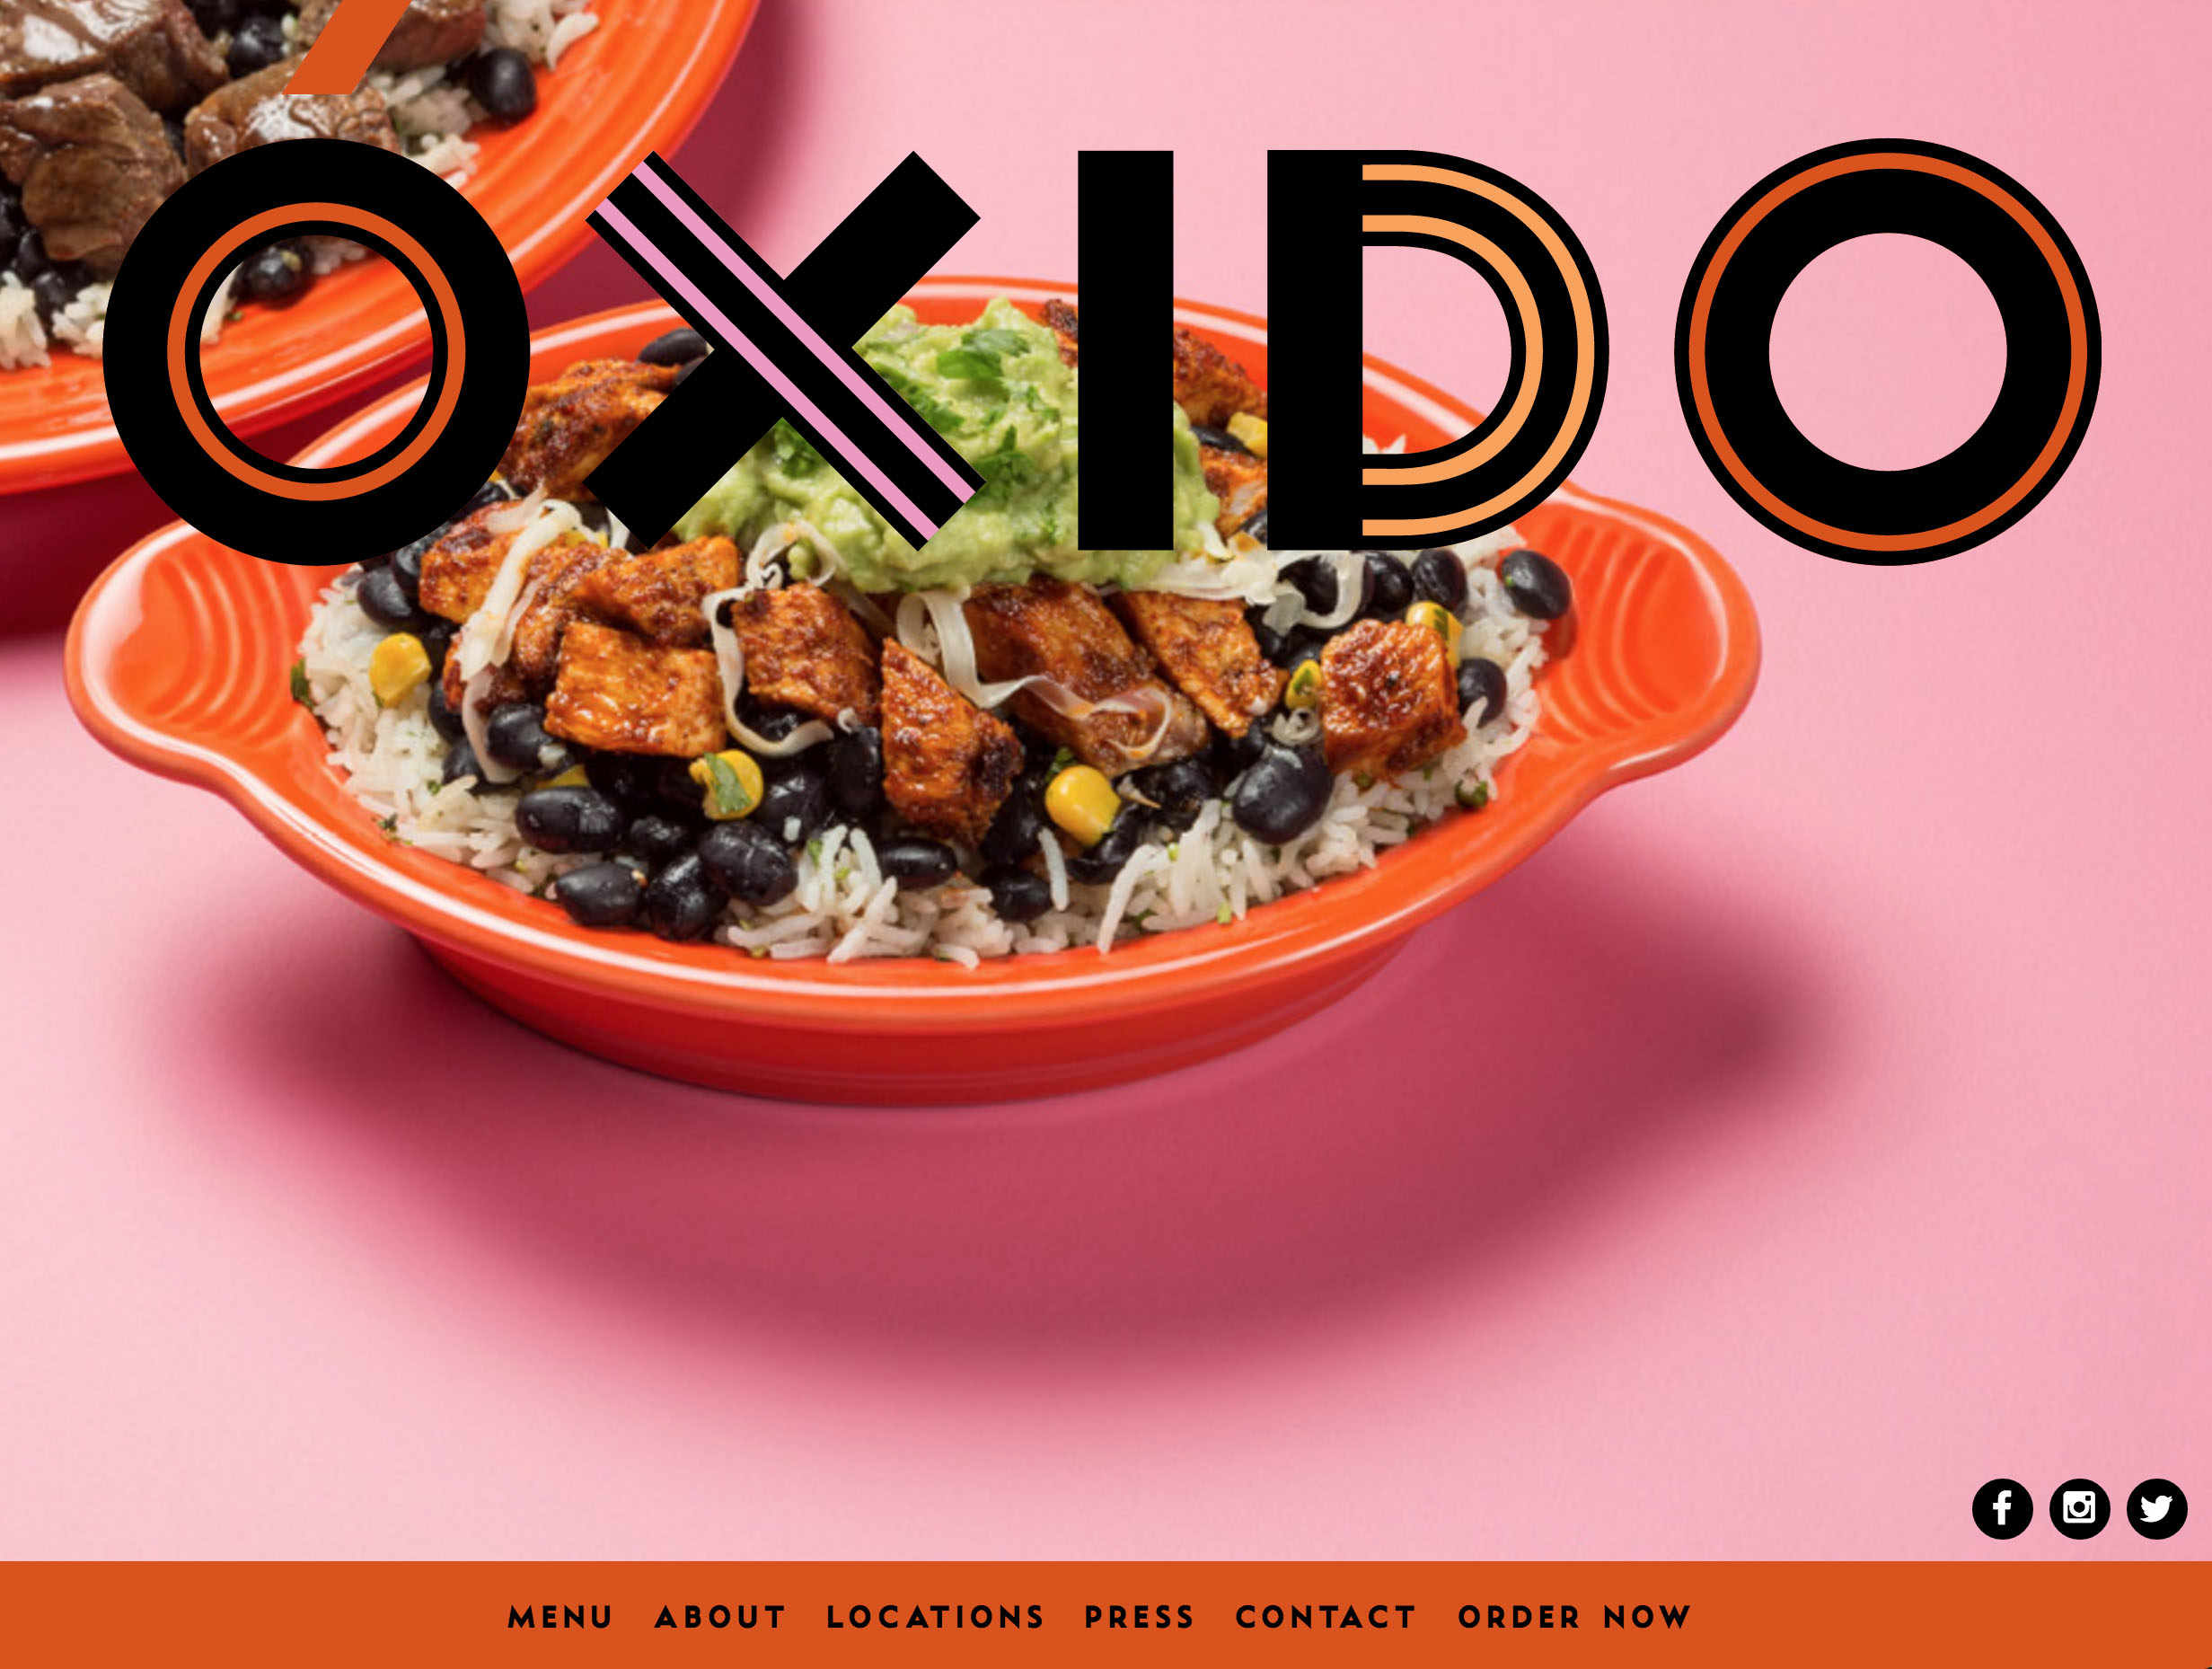 Oxido logo and website designed by Scissor.